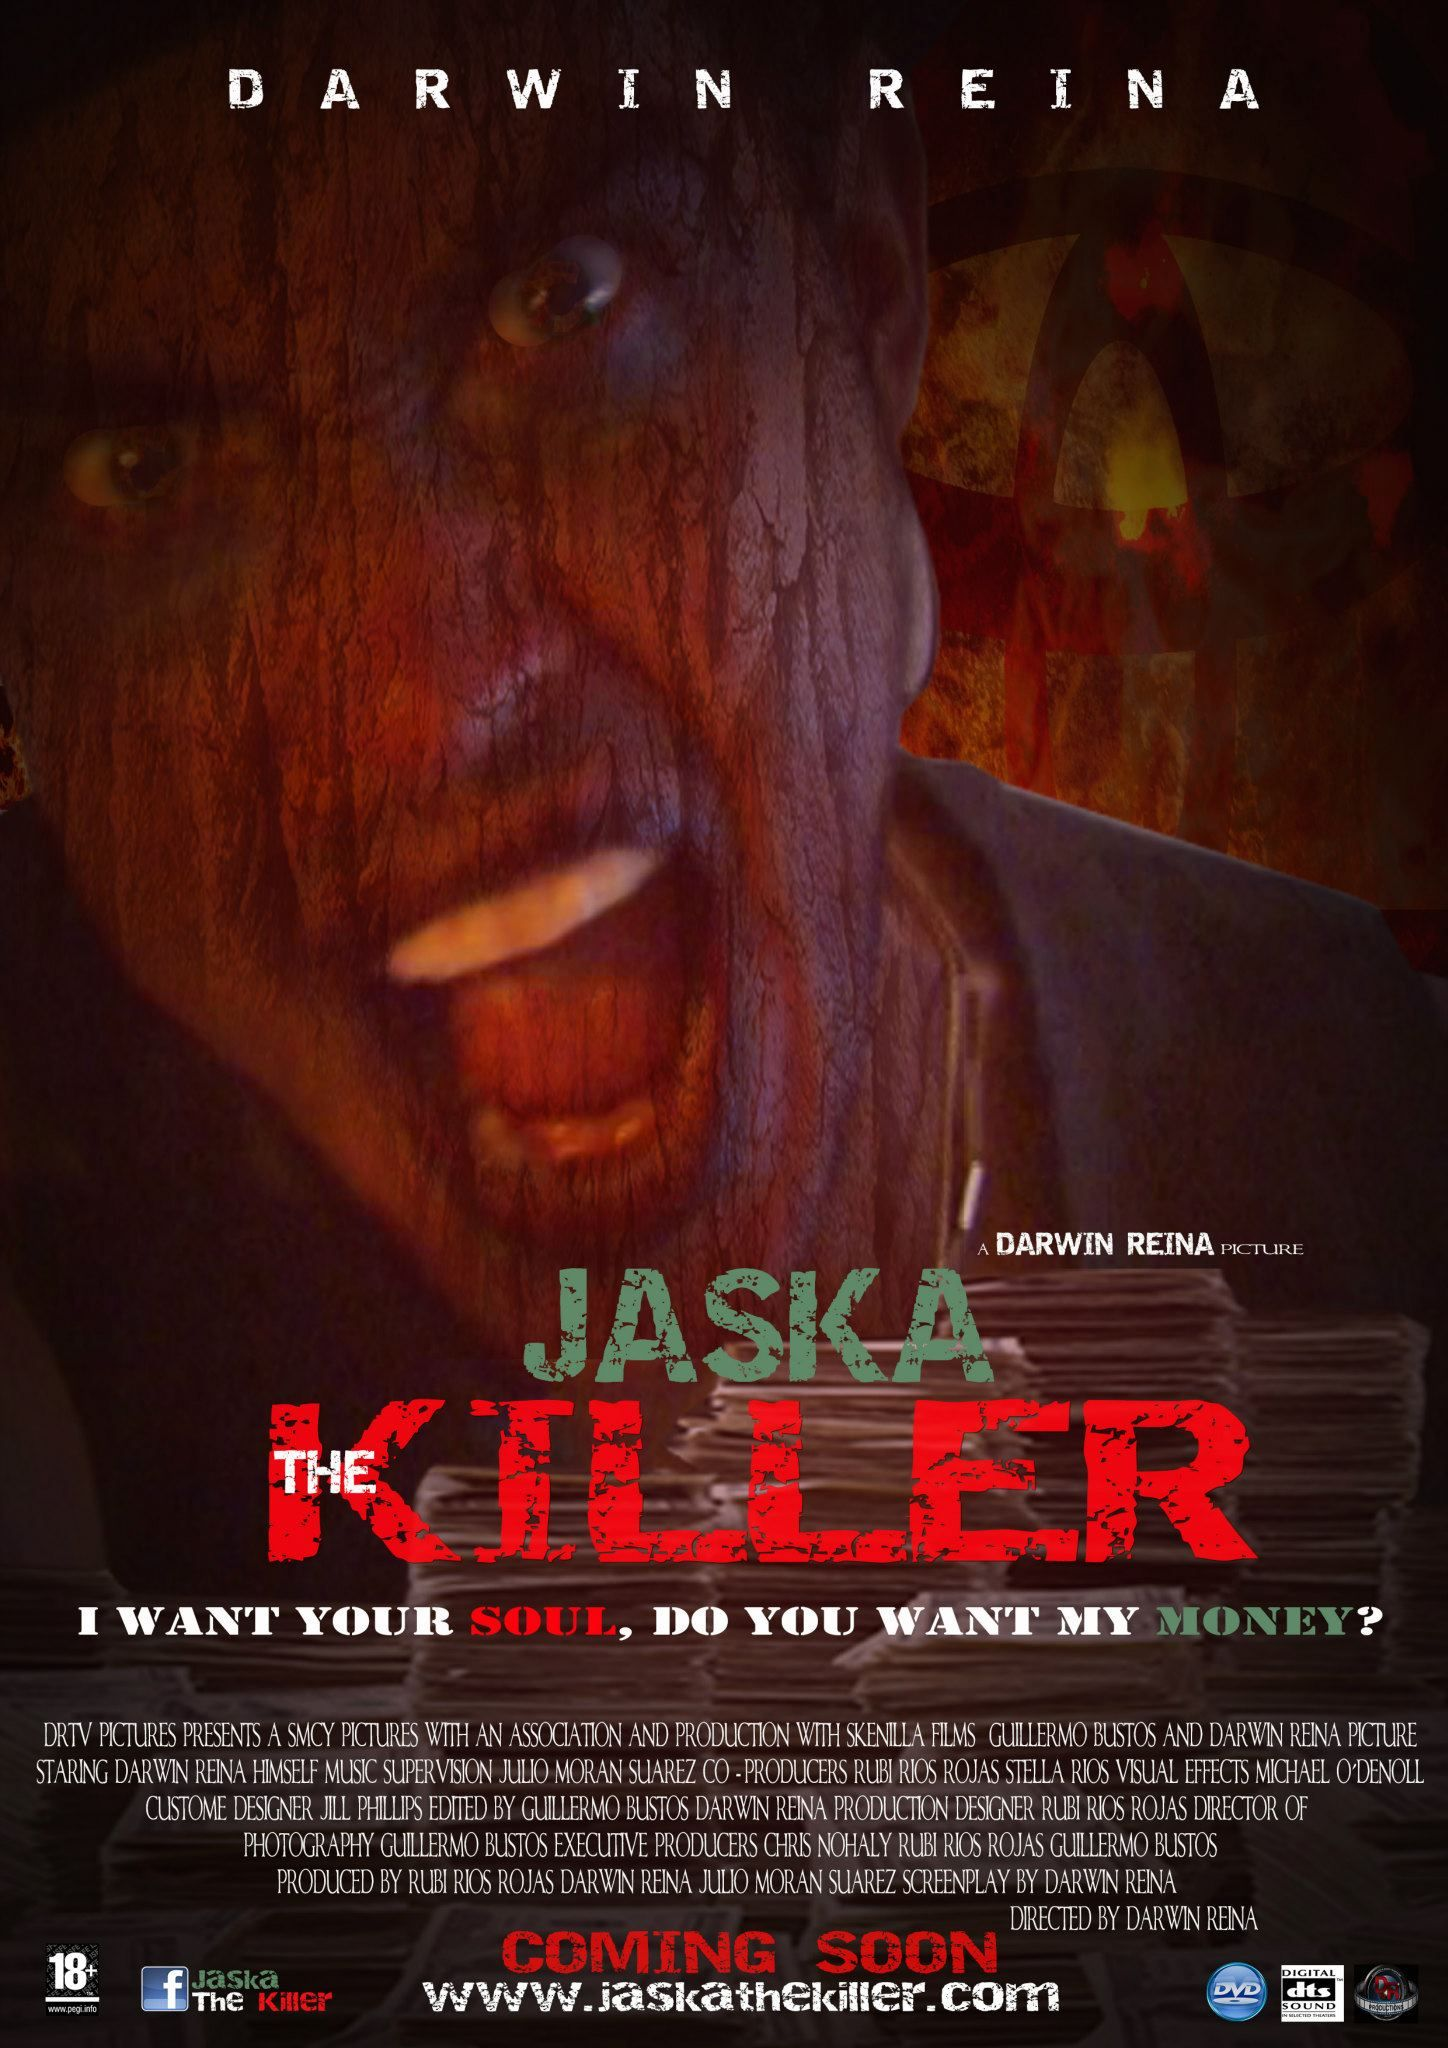 JASKA THE KILLER